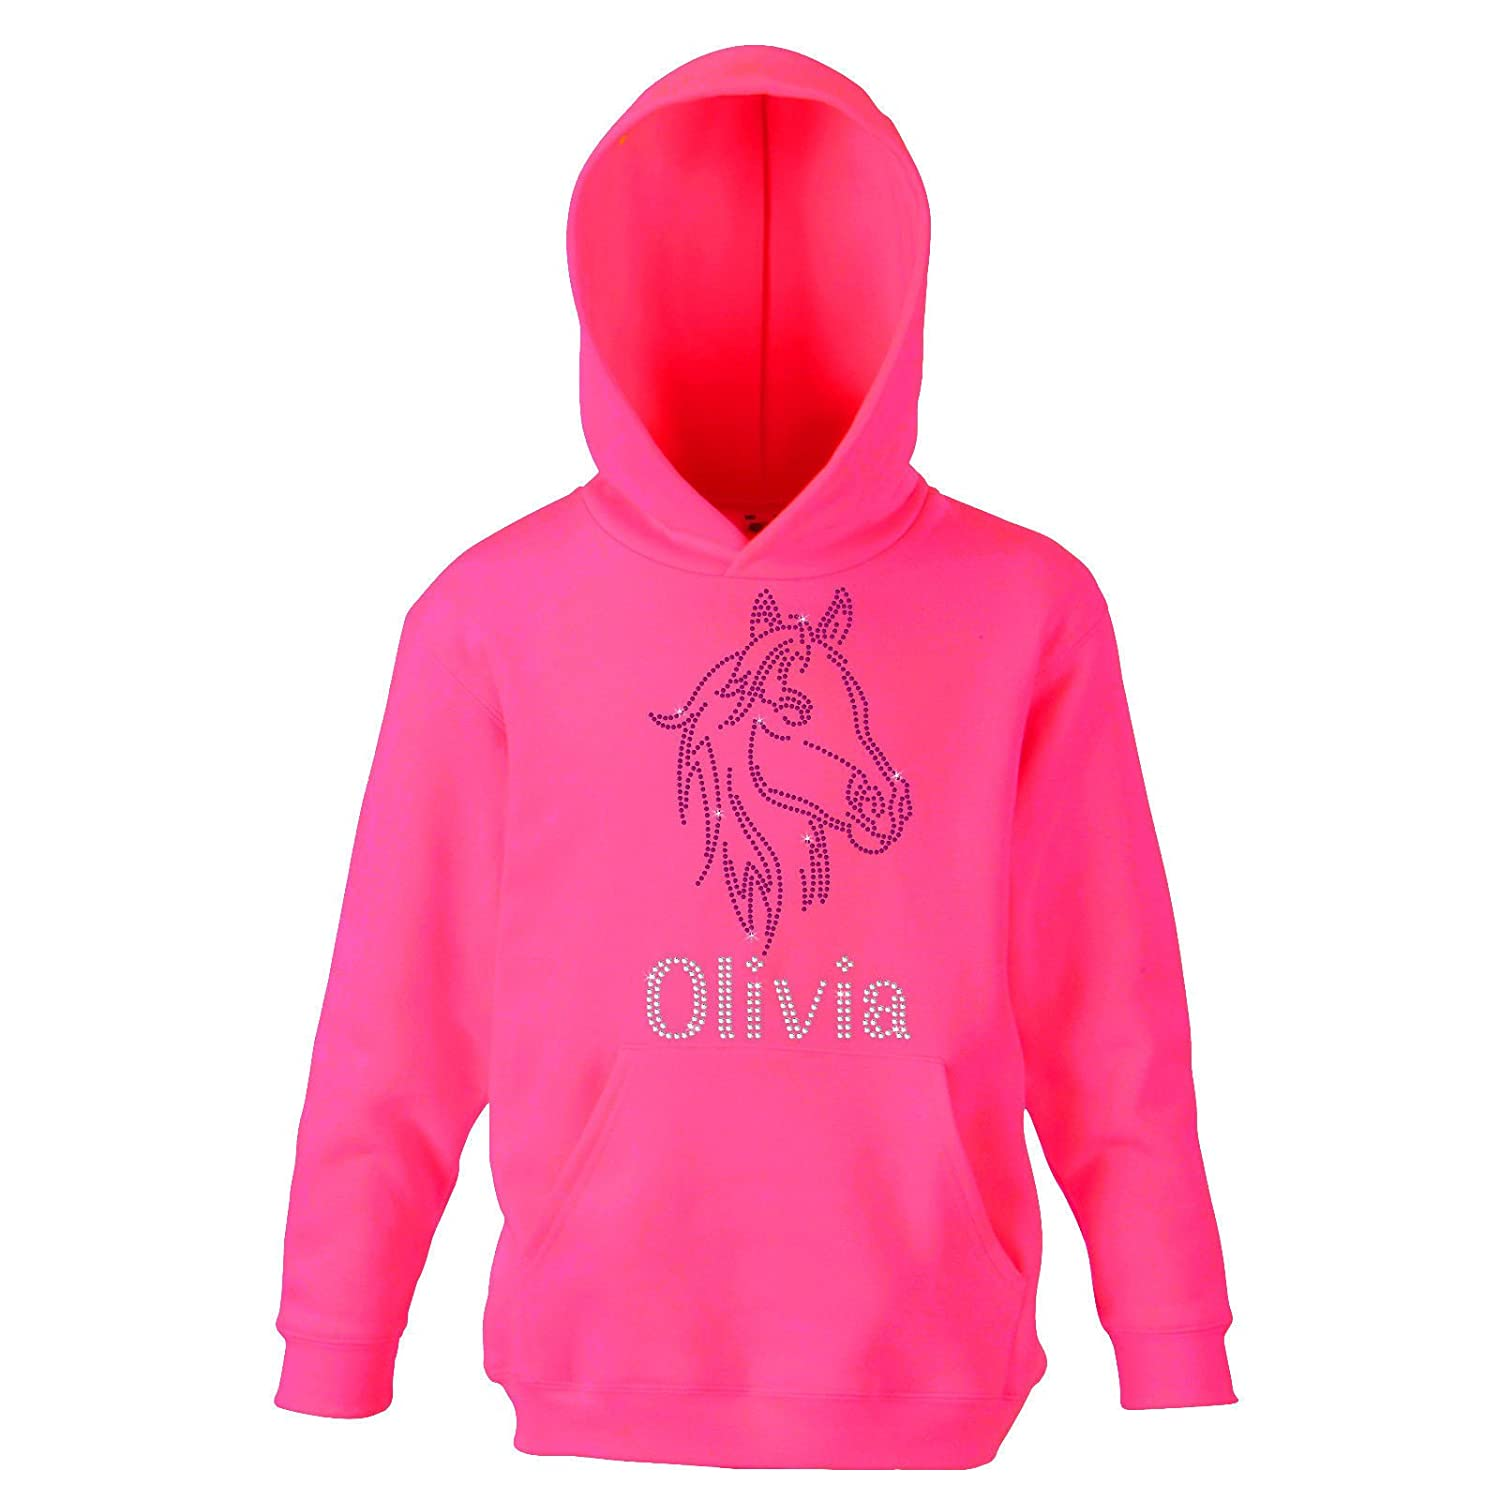 Fuchia PINK 9-11 Years Girl's Horse Face riding Personalised Hoodie Crystal Dance Jumper Leotard kids Hoody(K) By Varsany